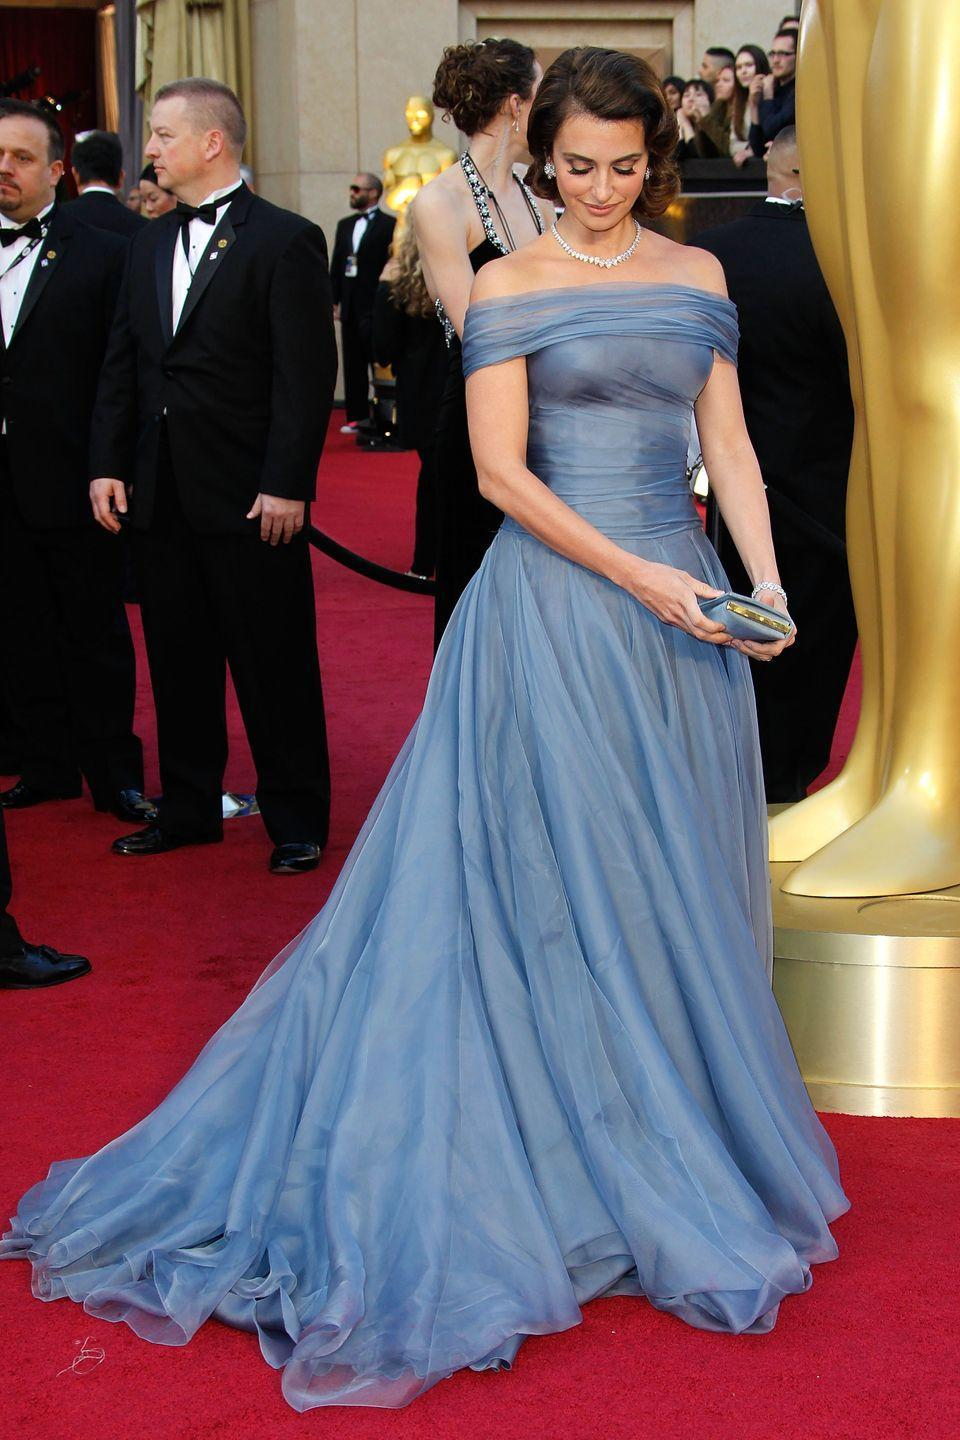 <p>While it may not have been intentional, the dusty blue Armani Privé gown that Penelope Cruz wore to the 2012 Academy Awards made her look just like Princess Aurora.</p>